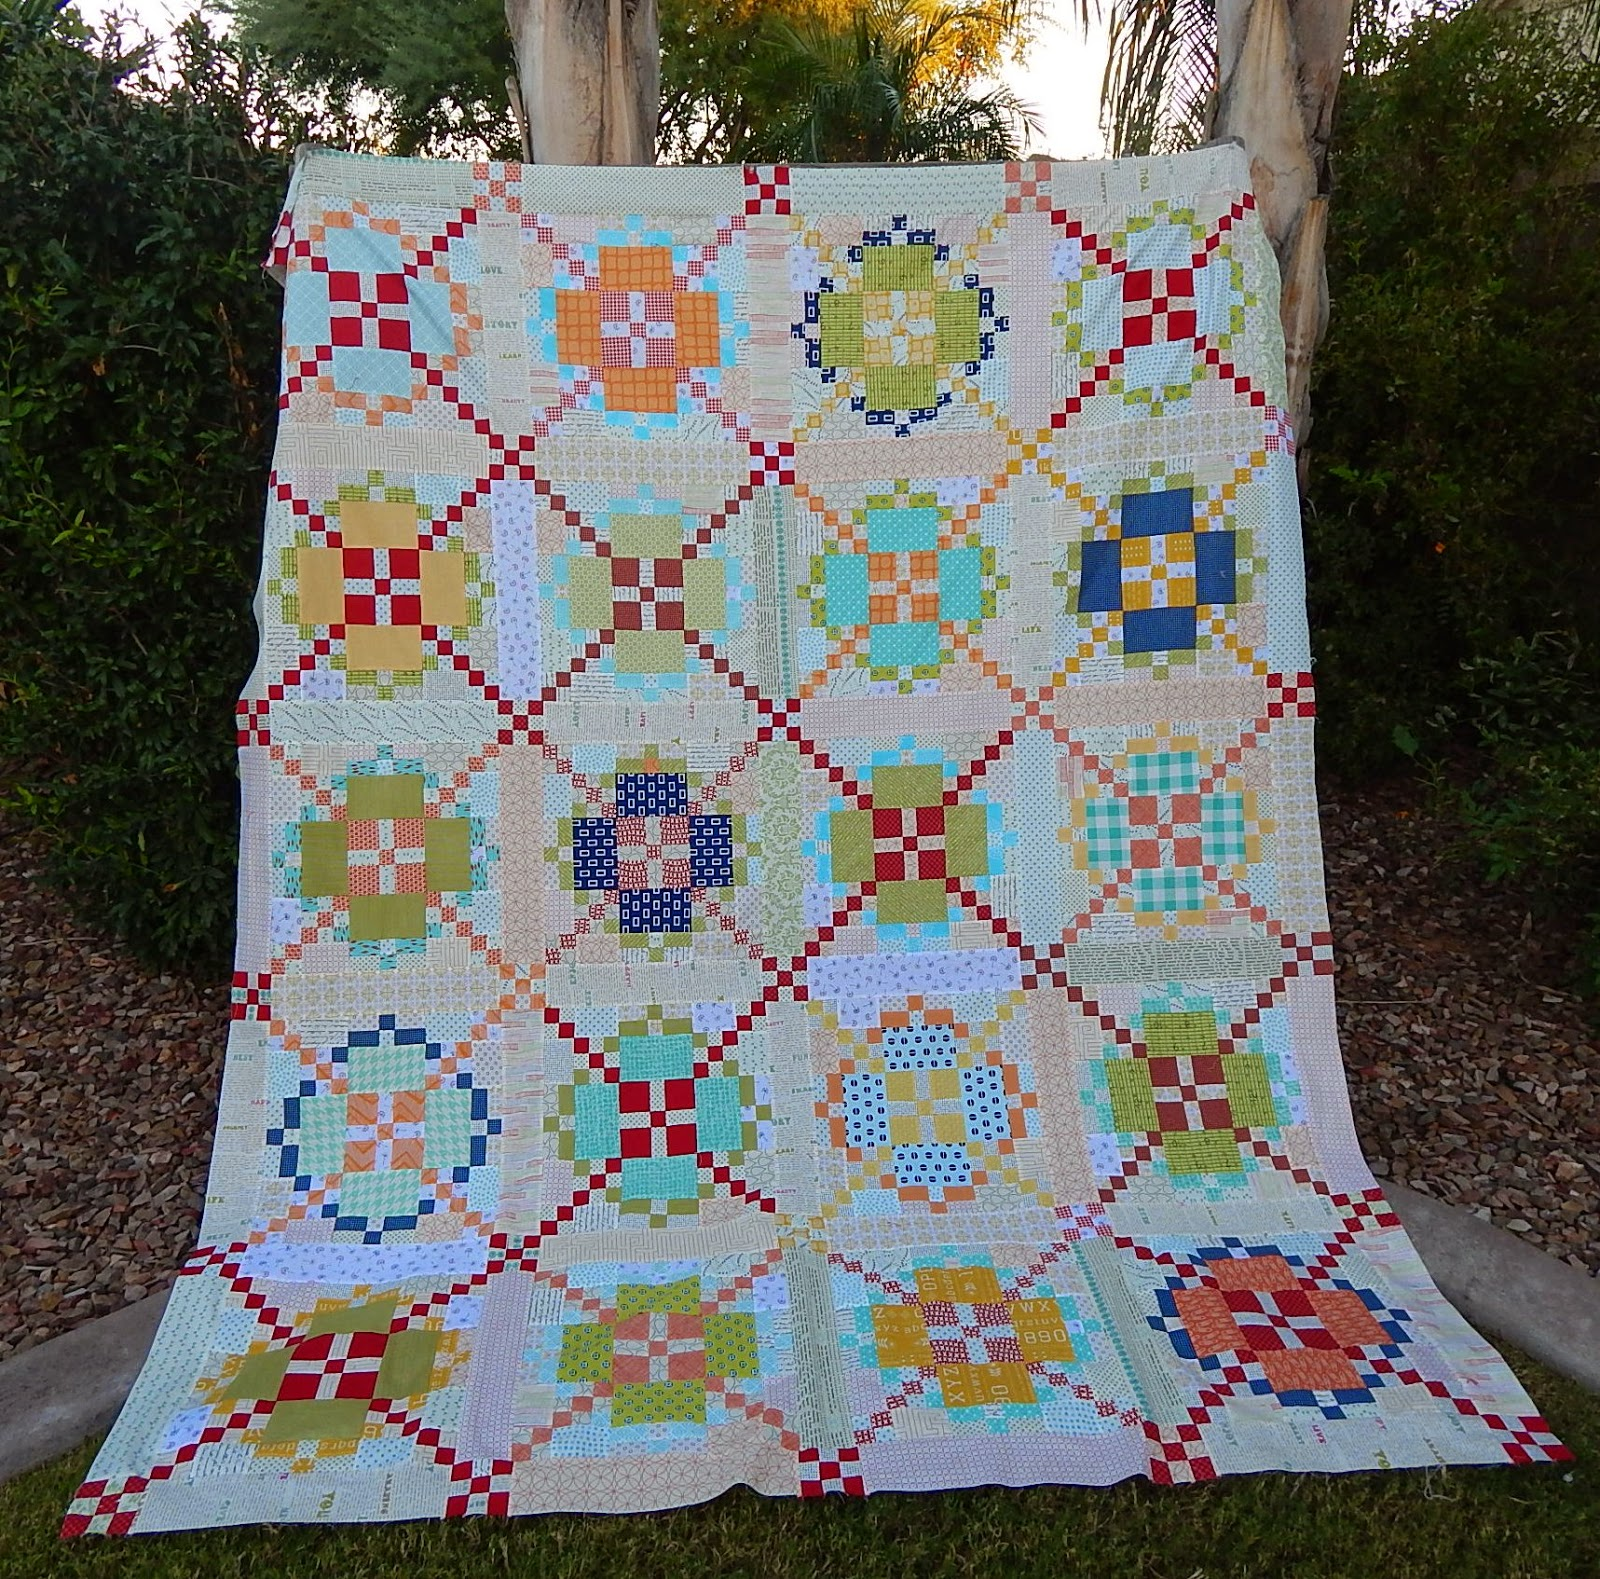 Quilting Blog - Cactus Needle Quilts, Fabric and More: Tone It ...